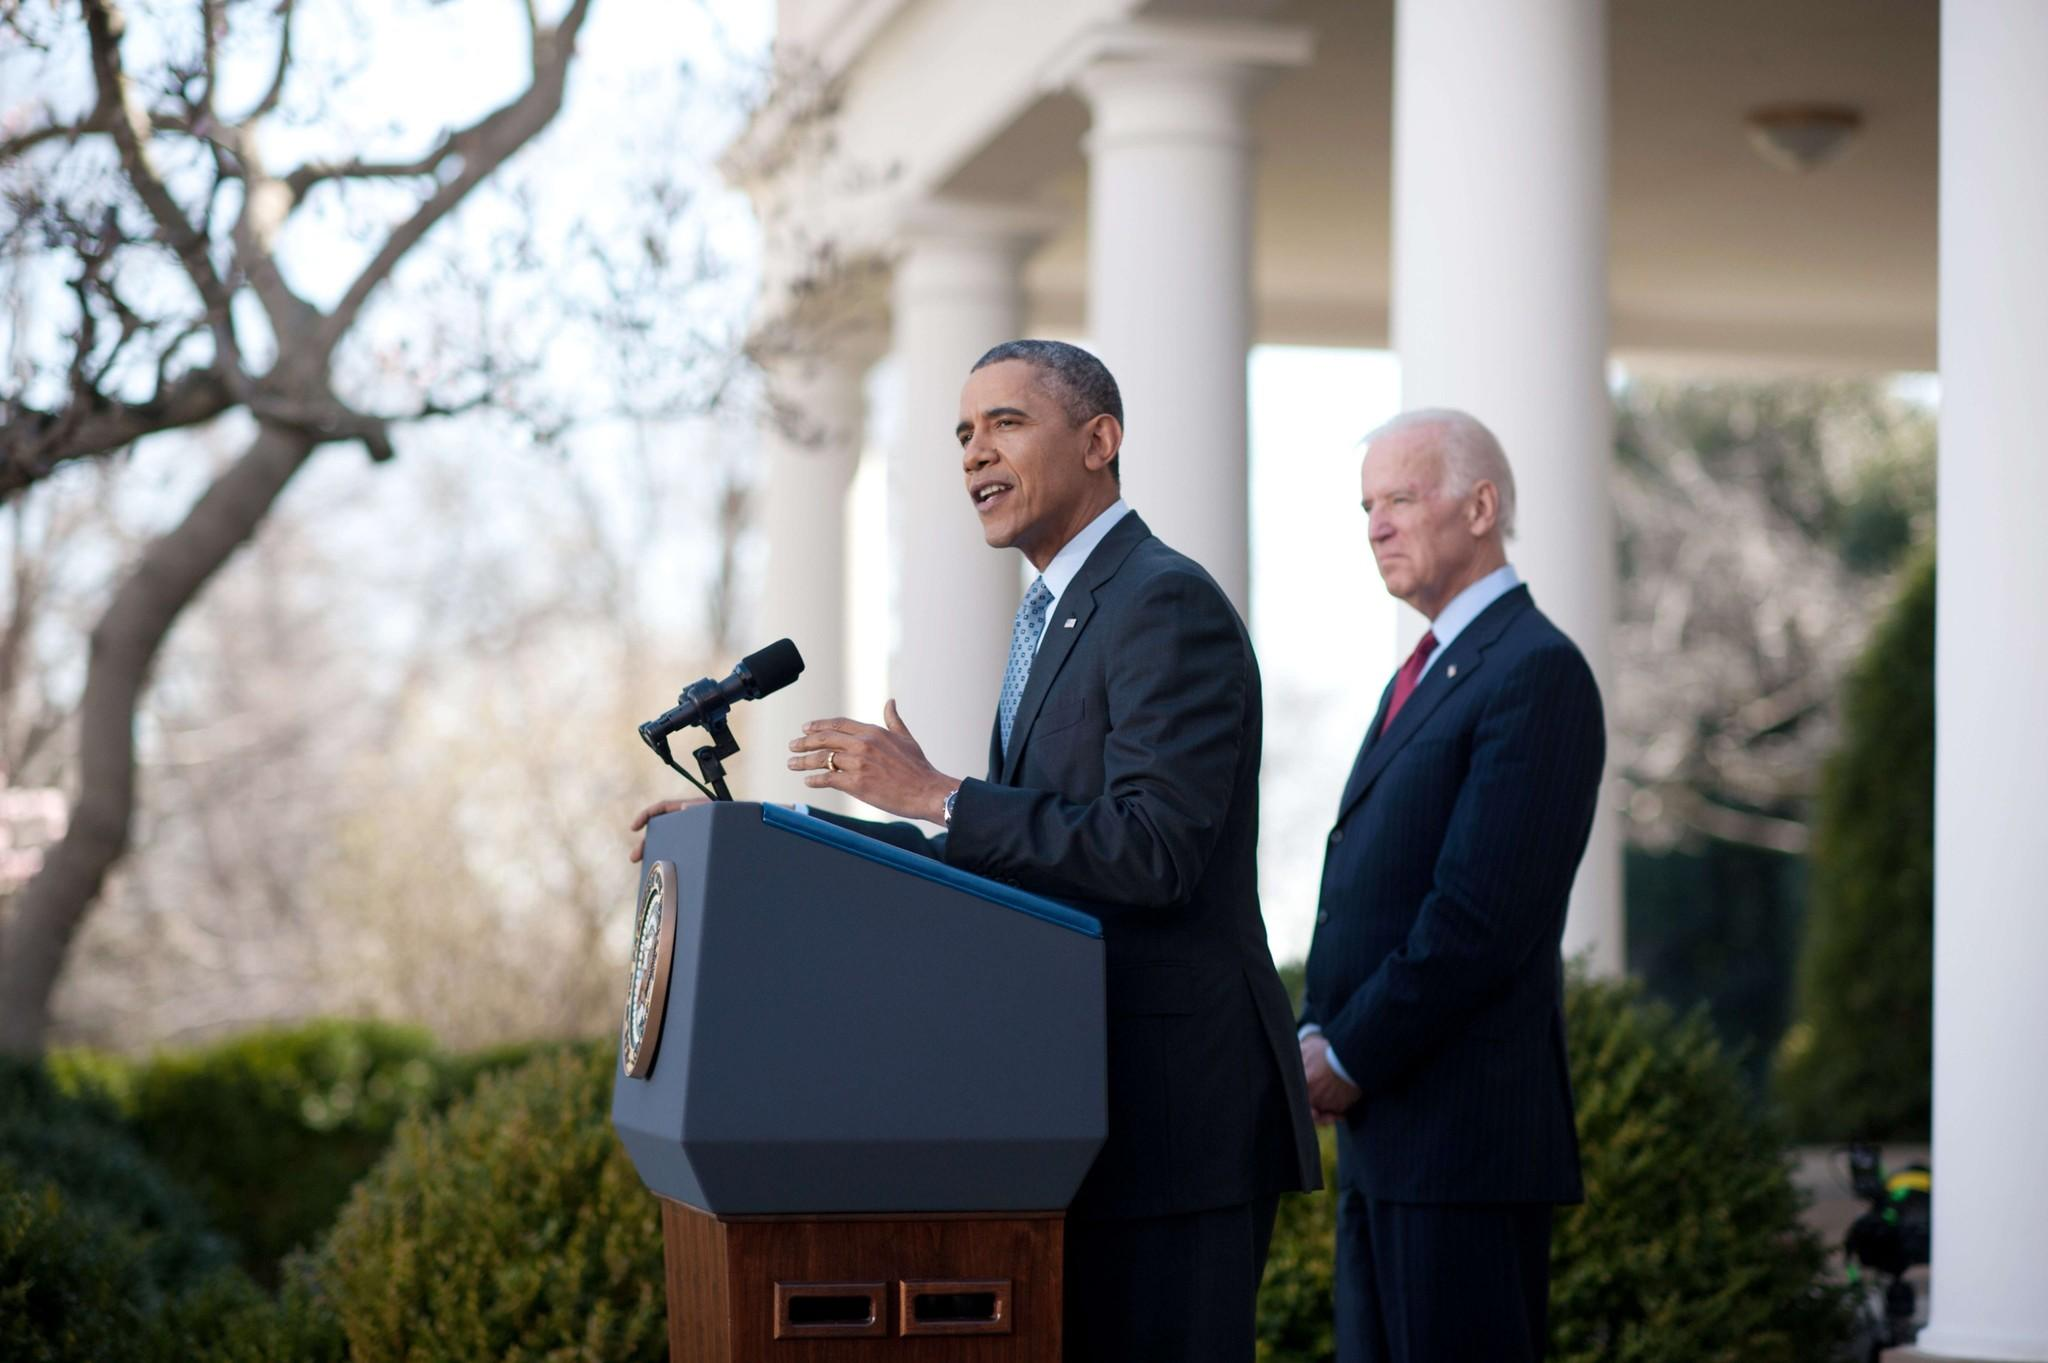 President Obama touts the Affordable Care Act, saying 7.1 million people have signed up, as Vice President Joe Biden listens in the White House Rose Garden.